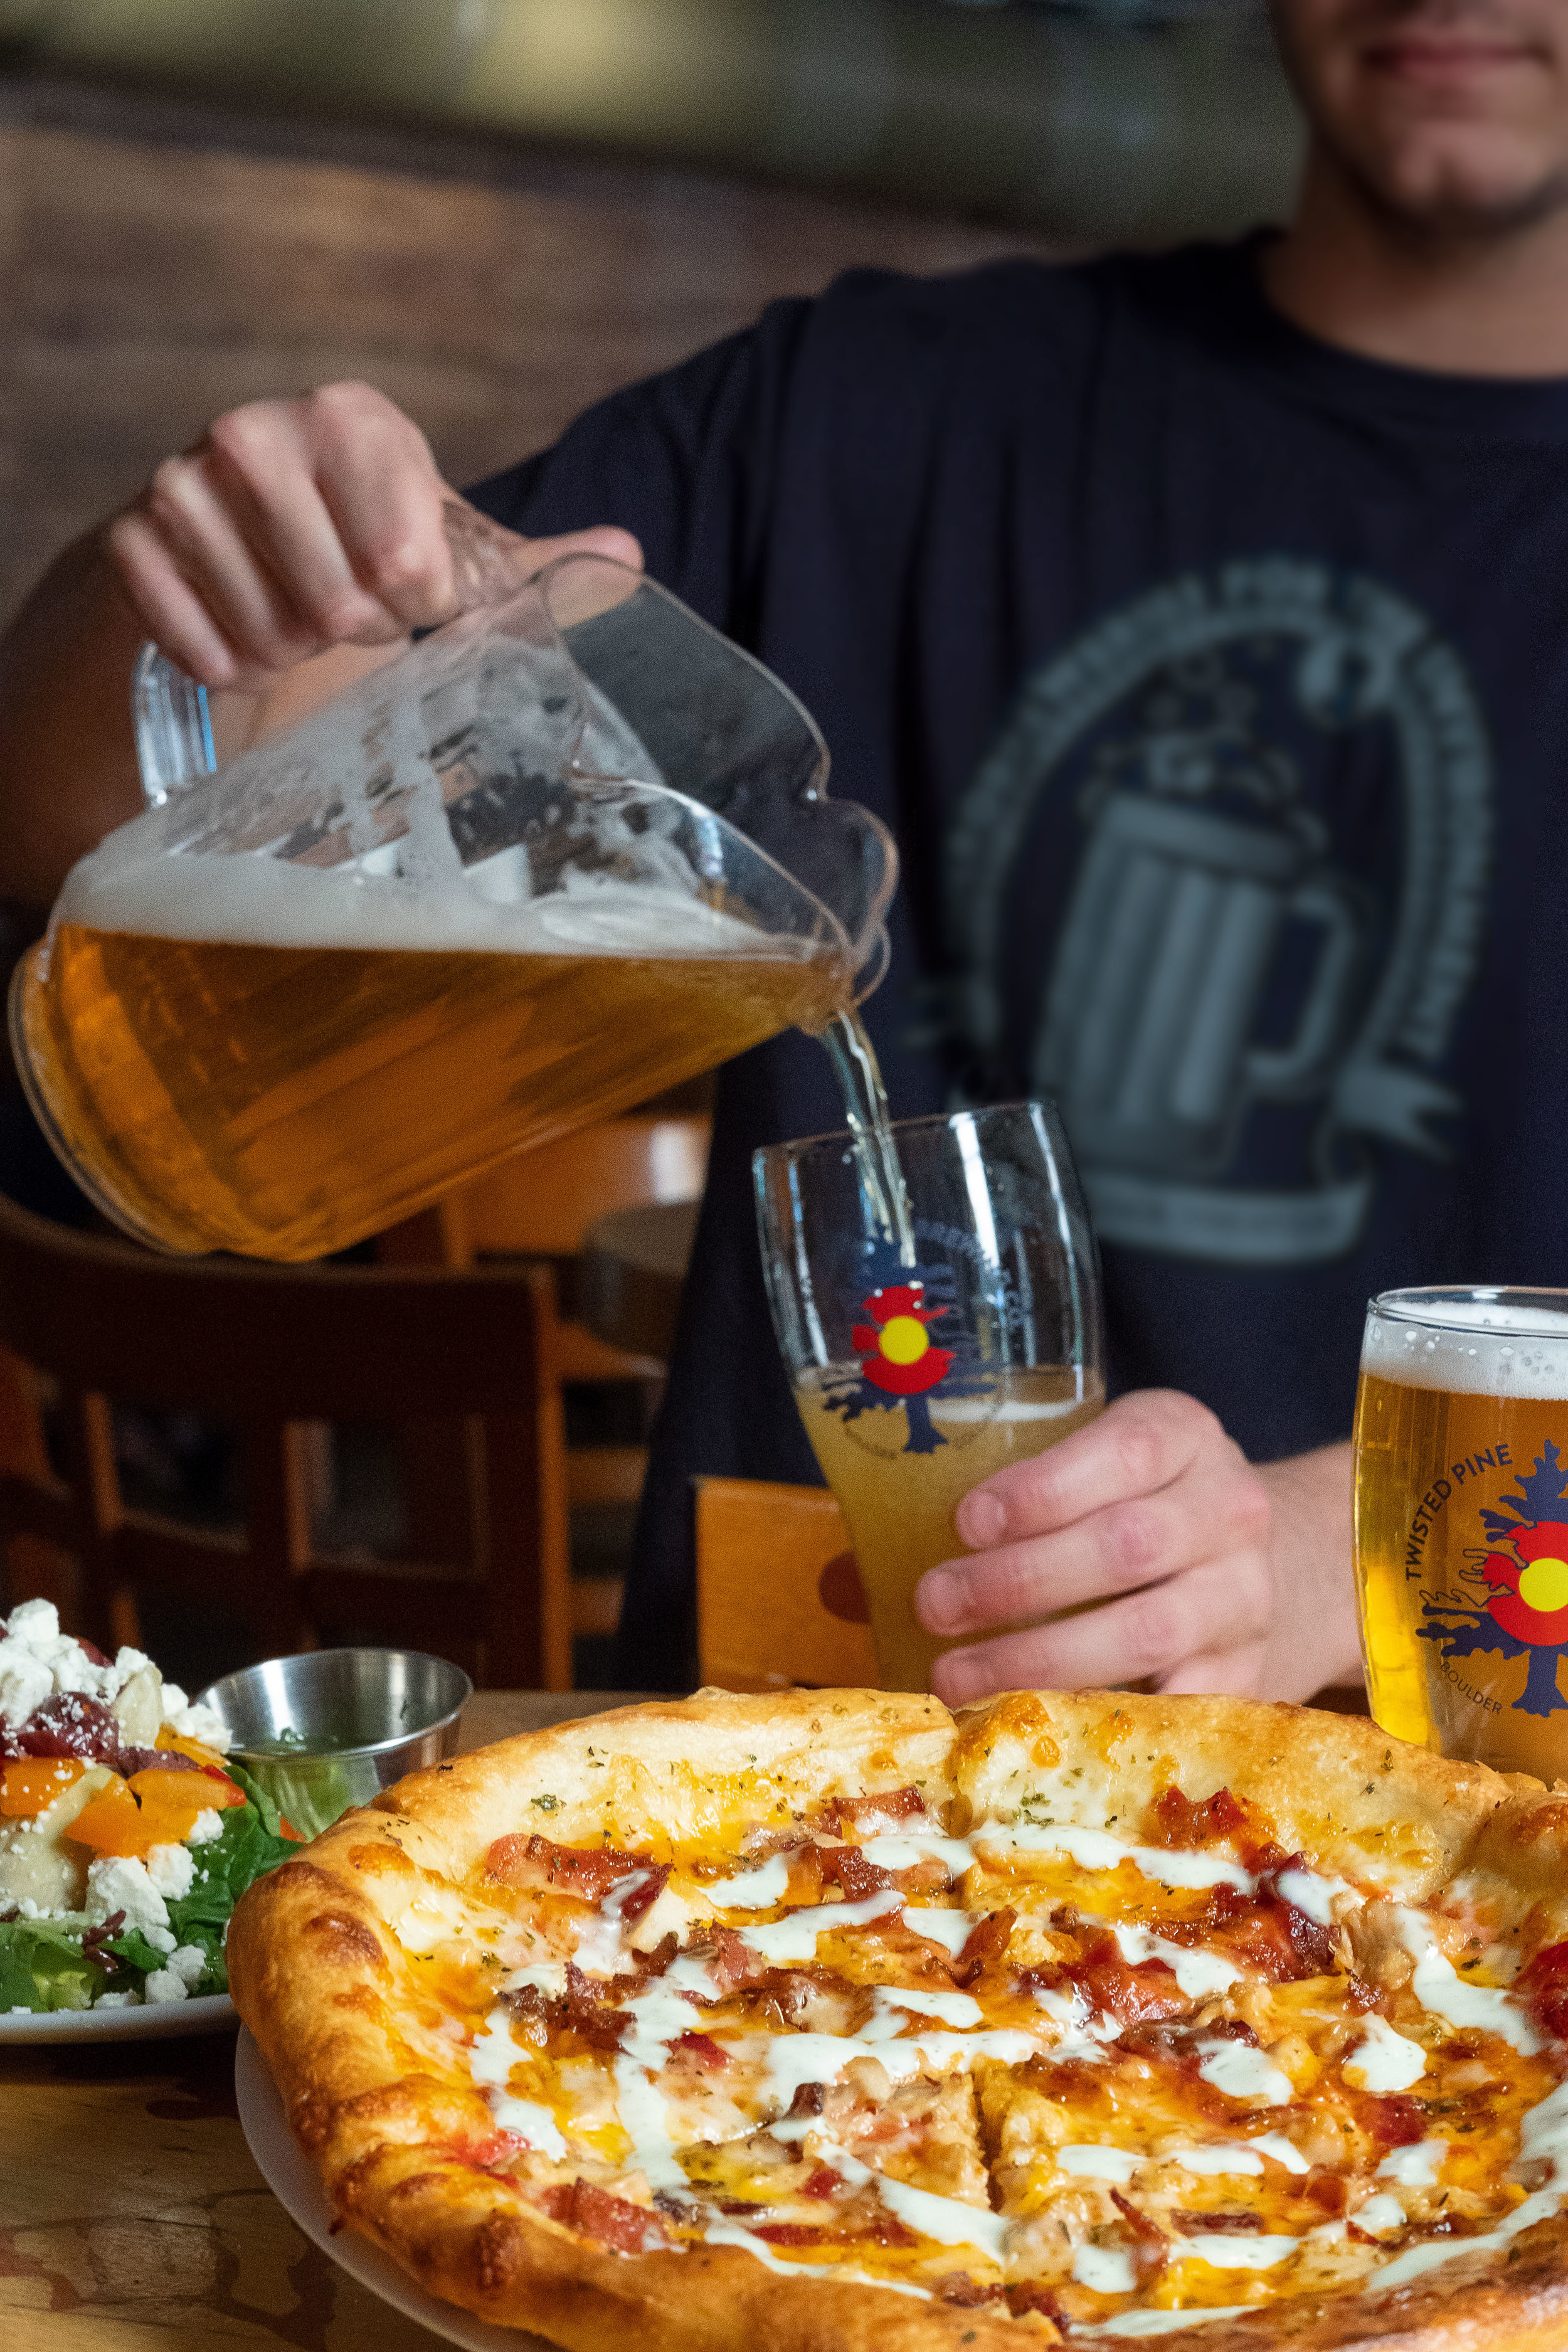 """"""" Pizza, pasta, and beer. These are just three gastronomic delights one must often give up when avoiding gluten."""""""